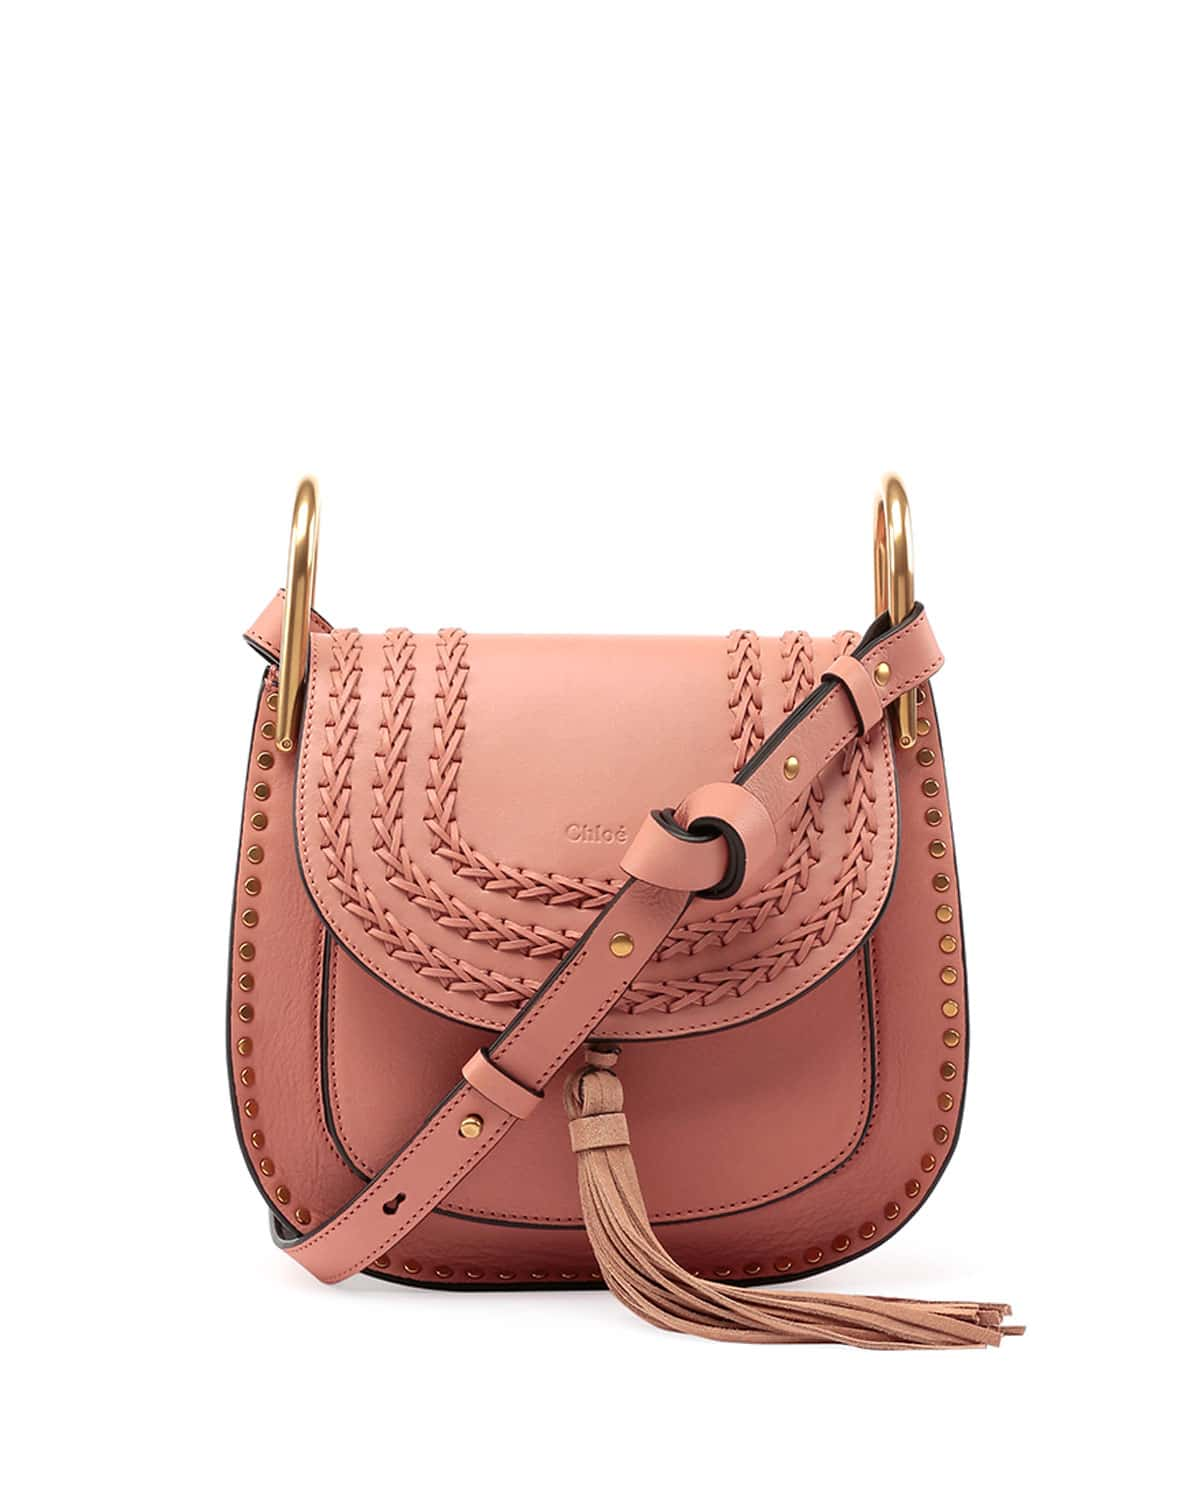 Chloe Spring/Summer 2016 Bag Collection